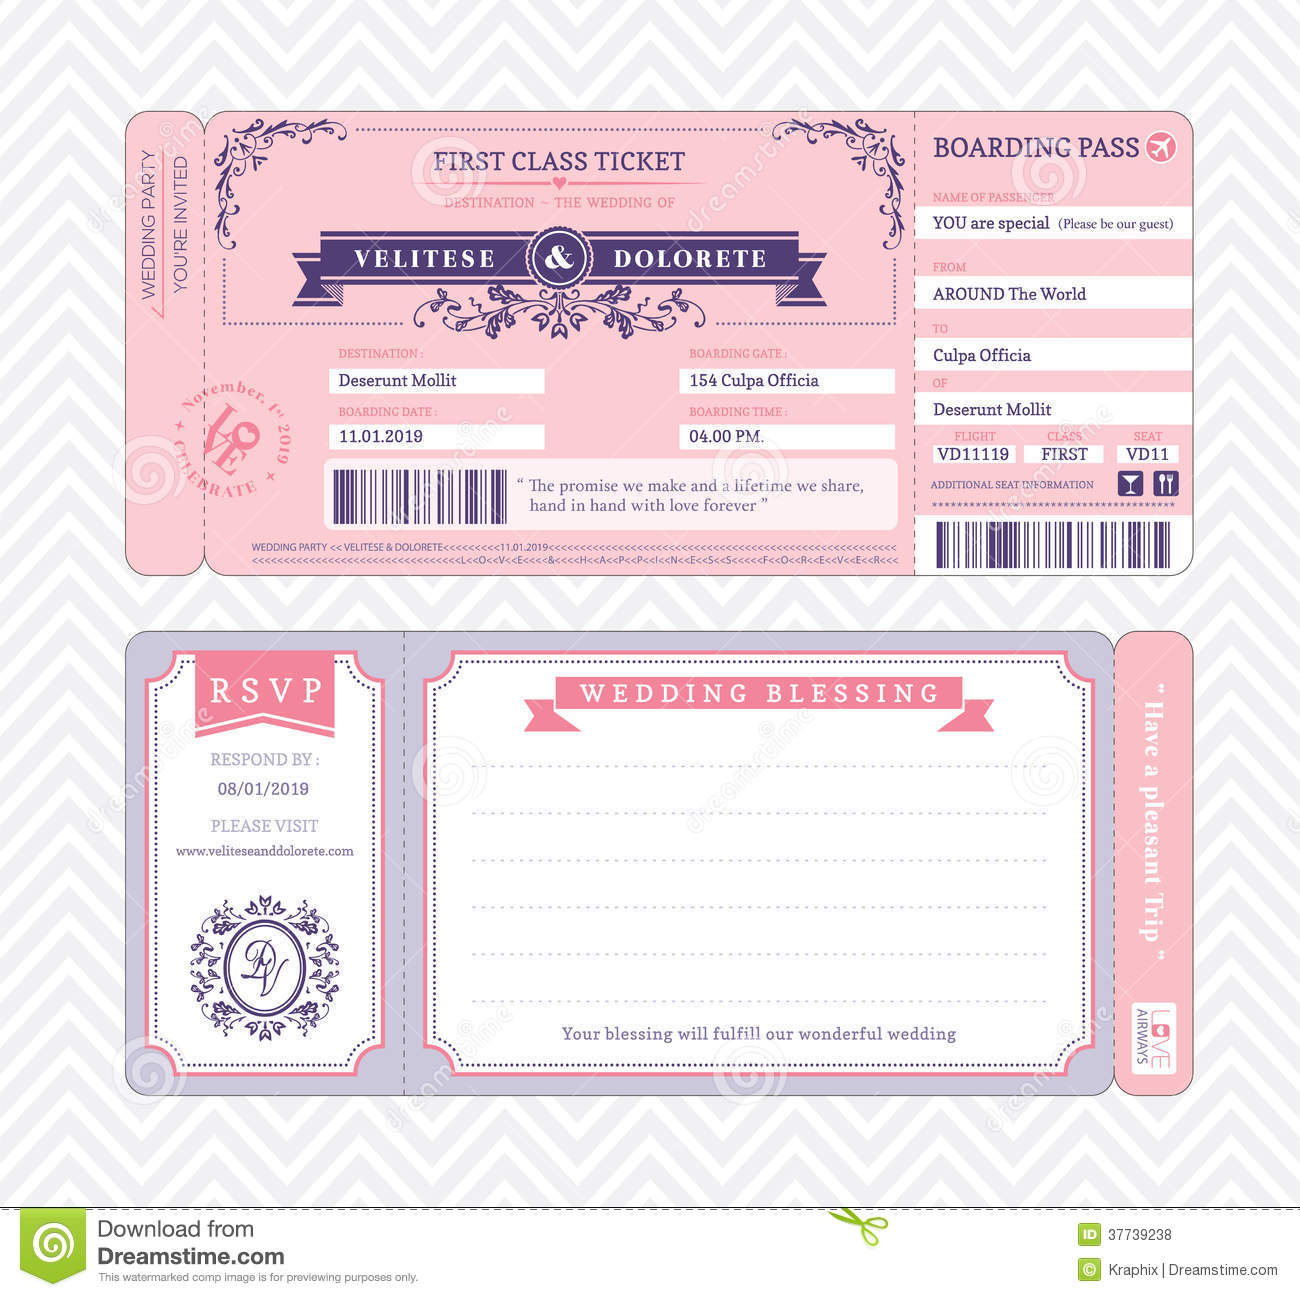 ticket vector free at getdrawings com free for personal use ticket